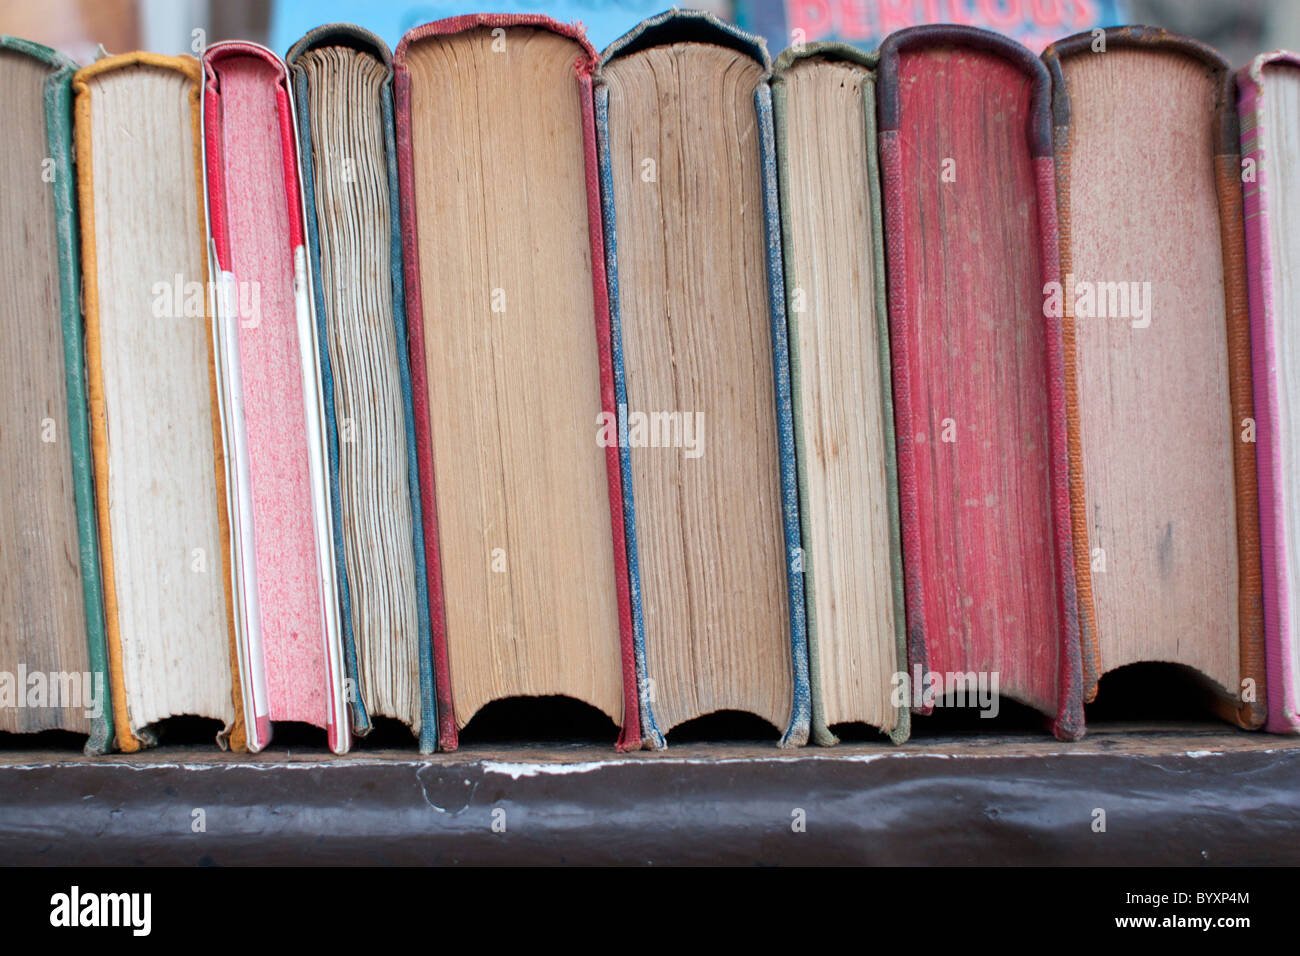 Secondhand Books For Sale in Norwich, Norfolk - Stock Image